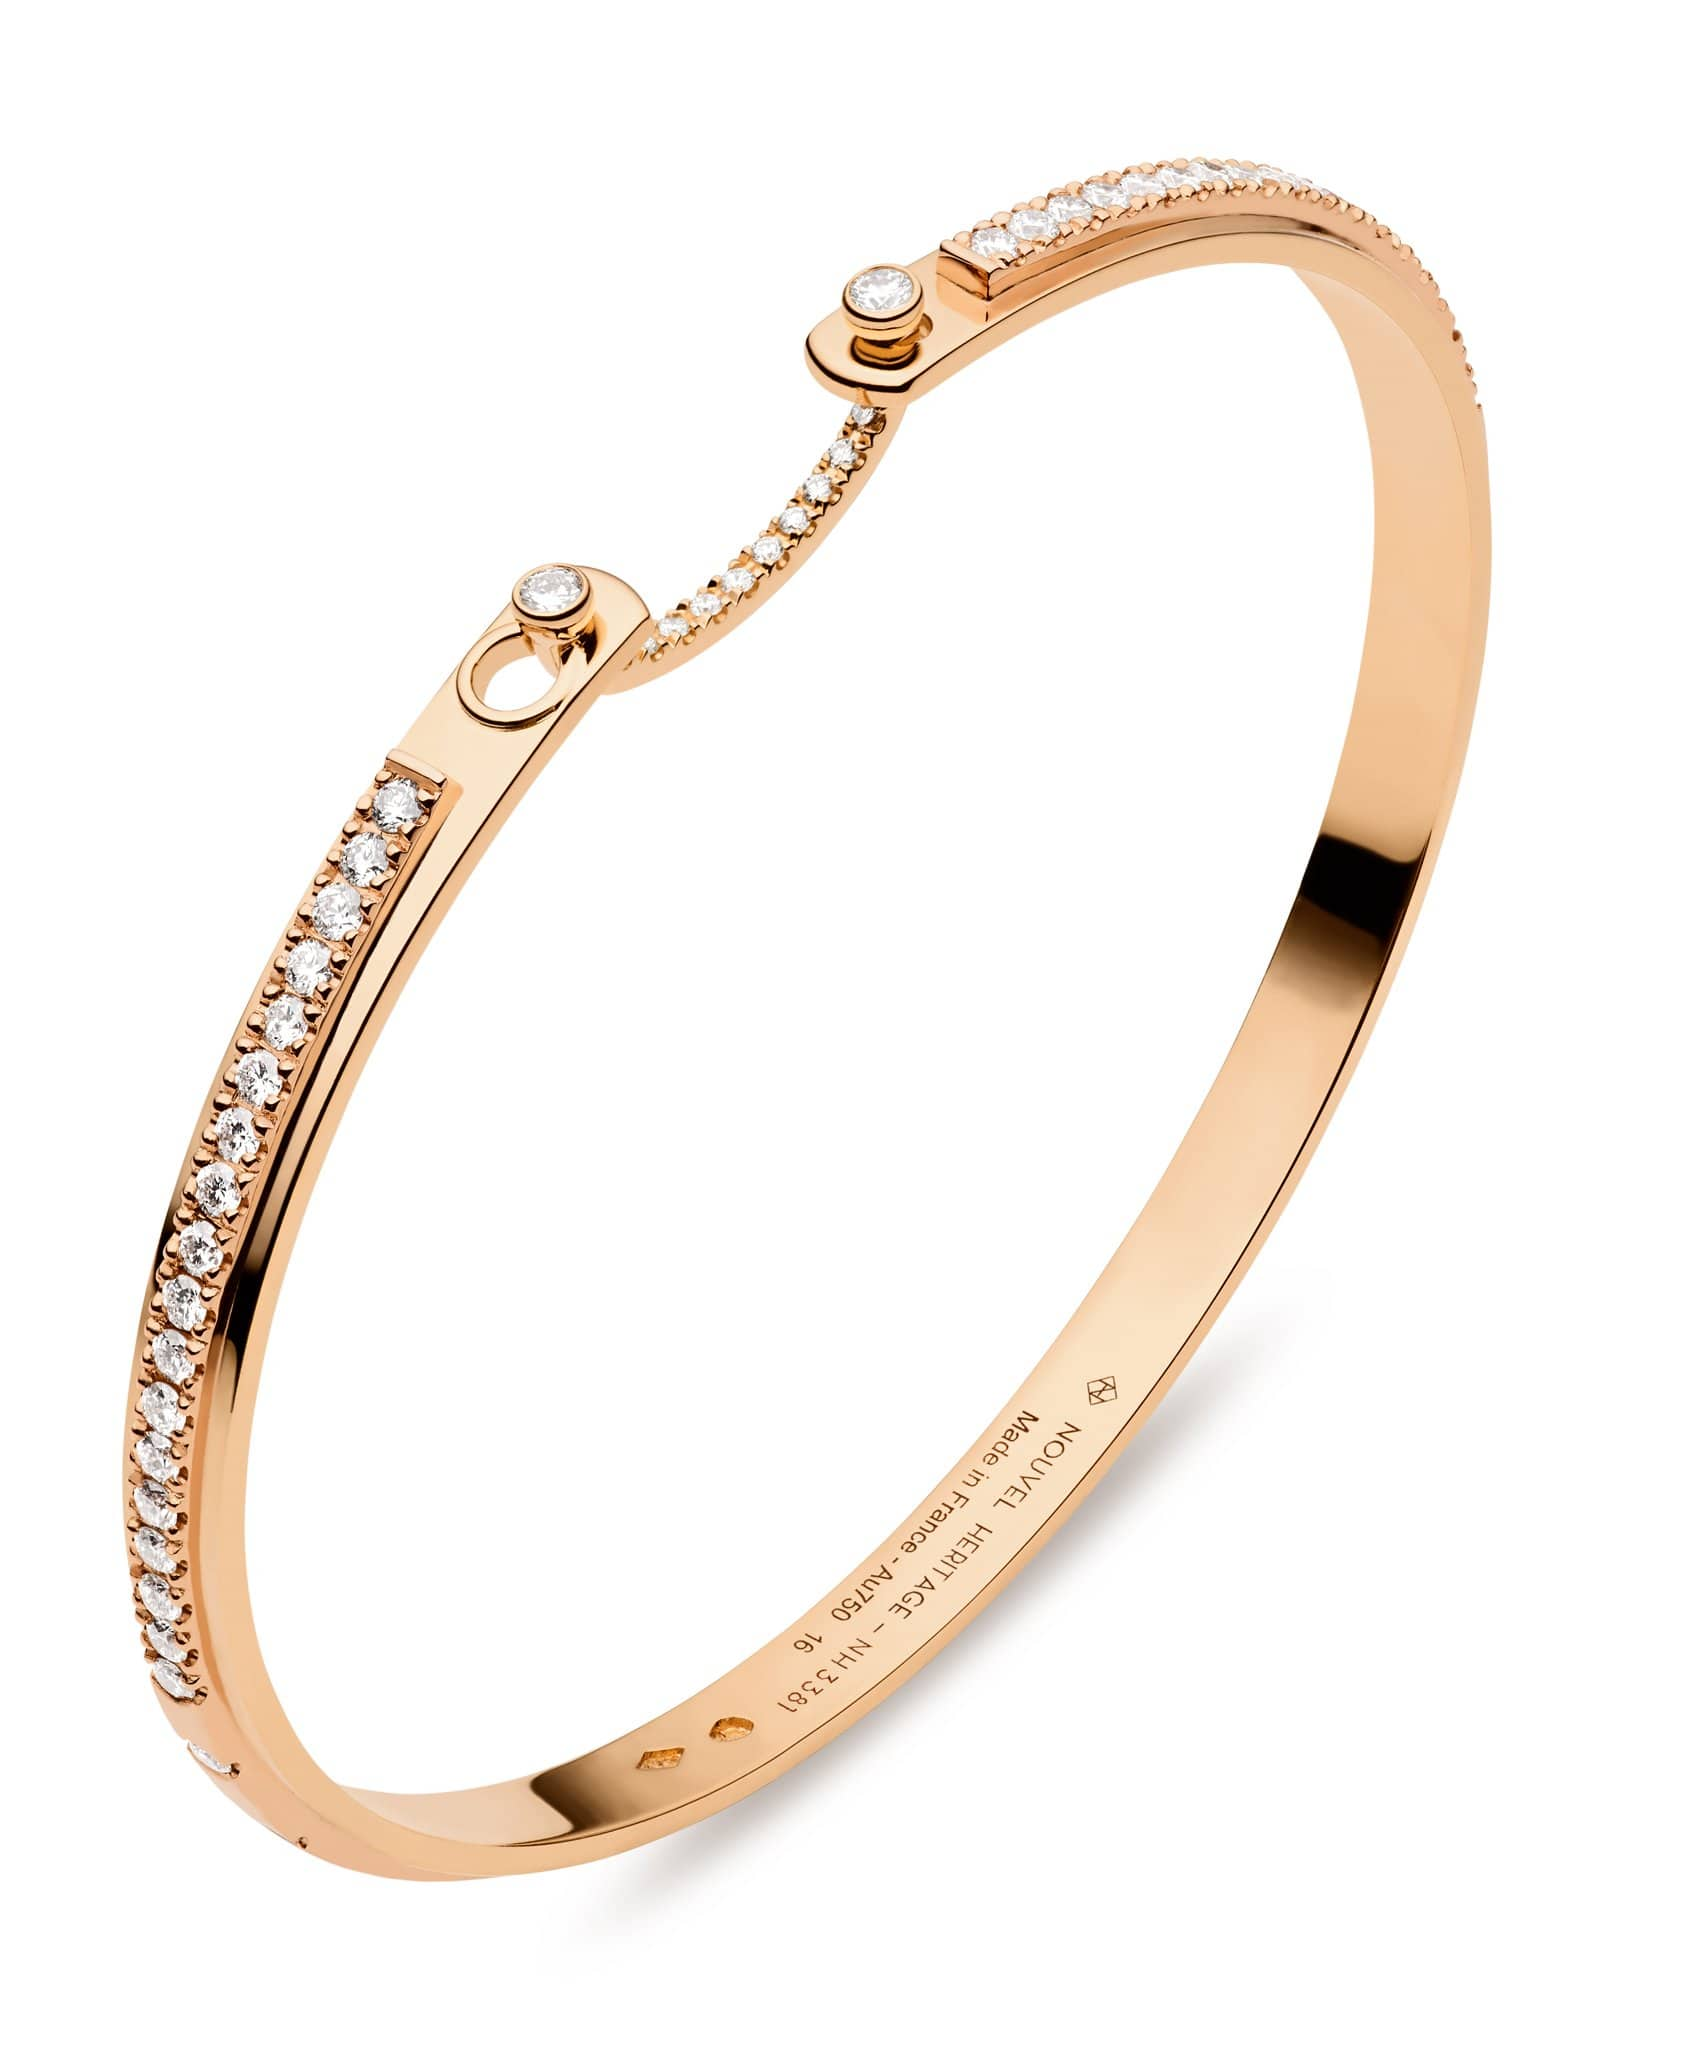 Tuxedo Mood Bangle - Nouvel Heritage